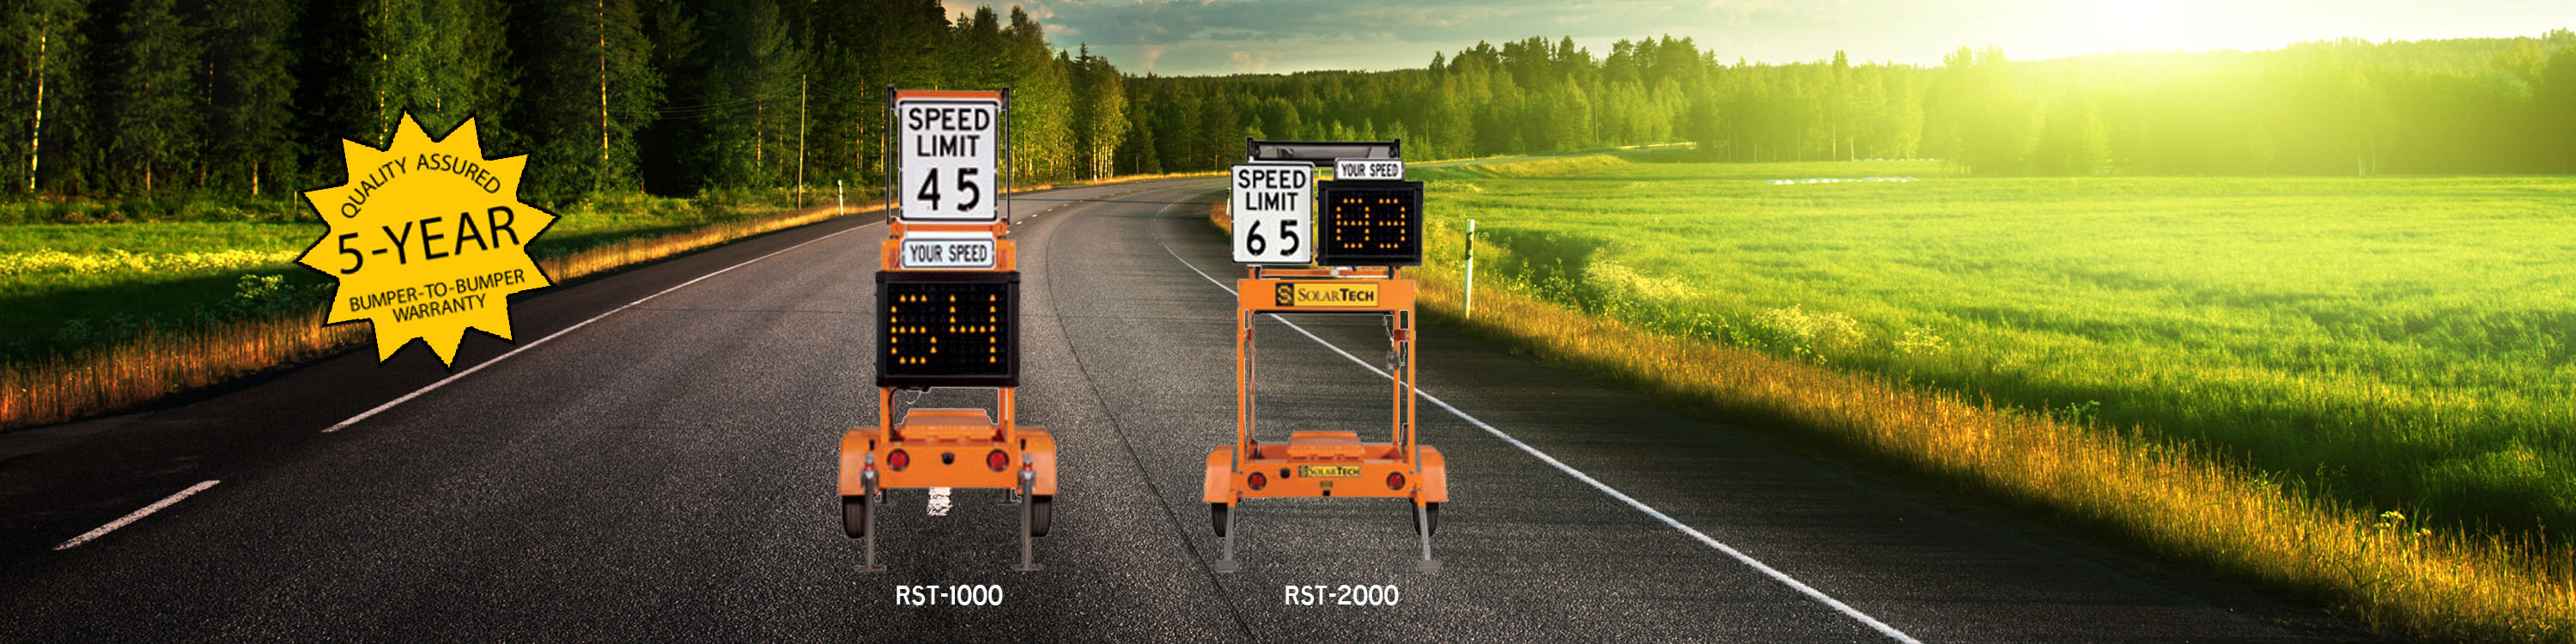 Radar Speed Trailers